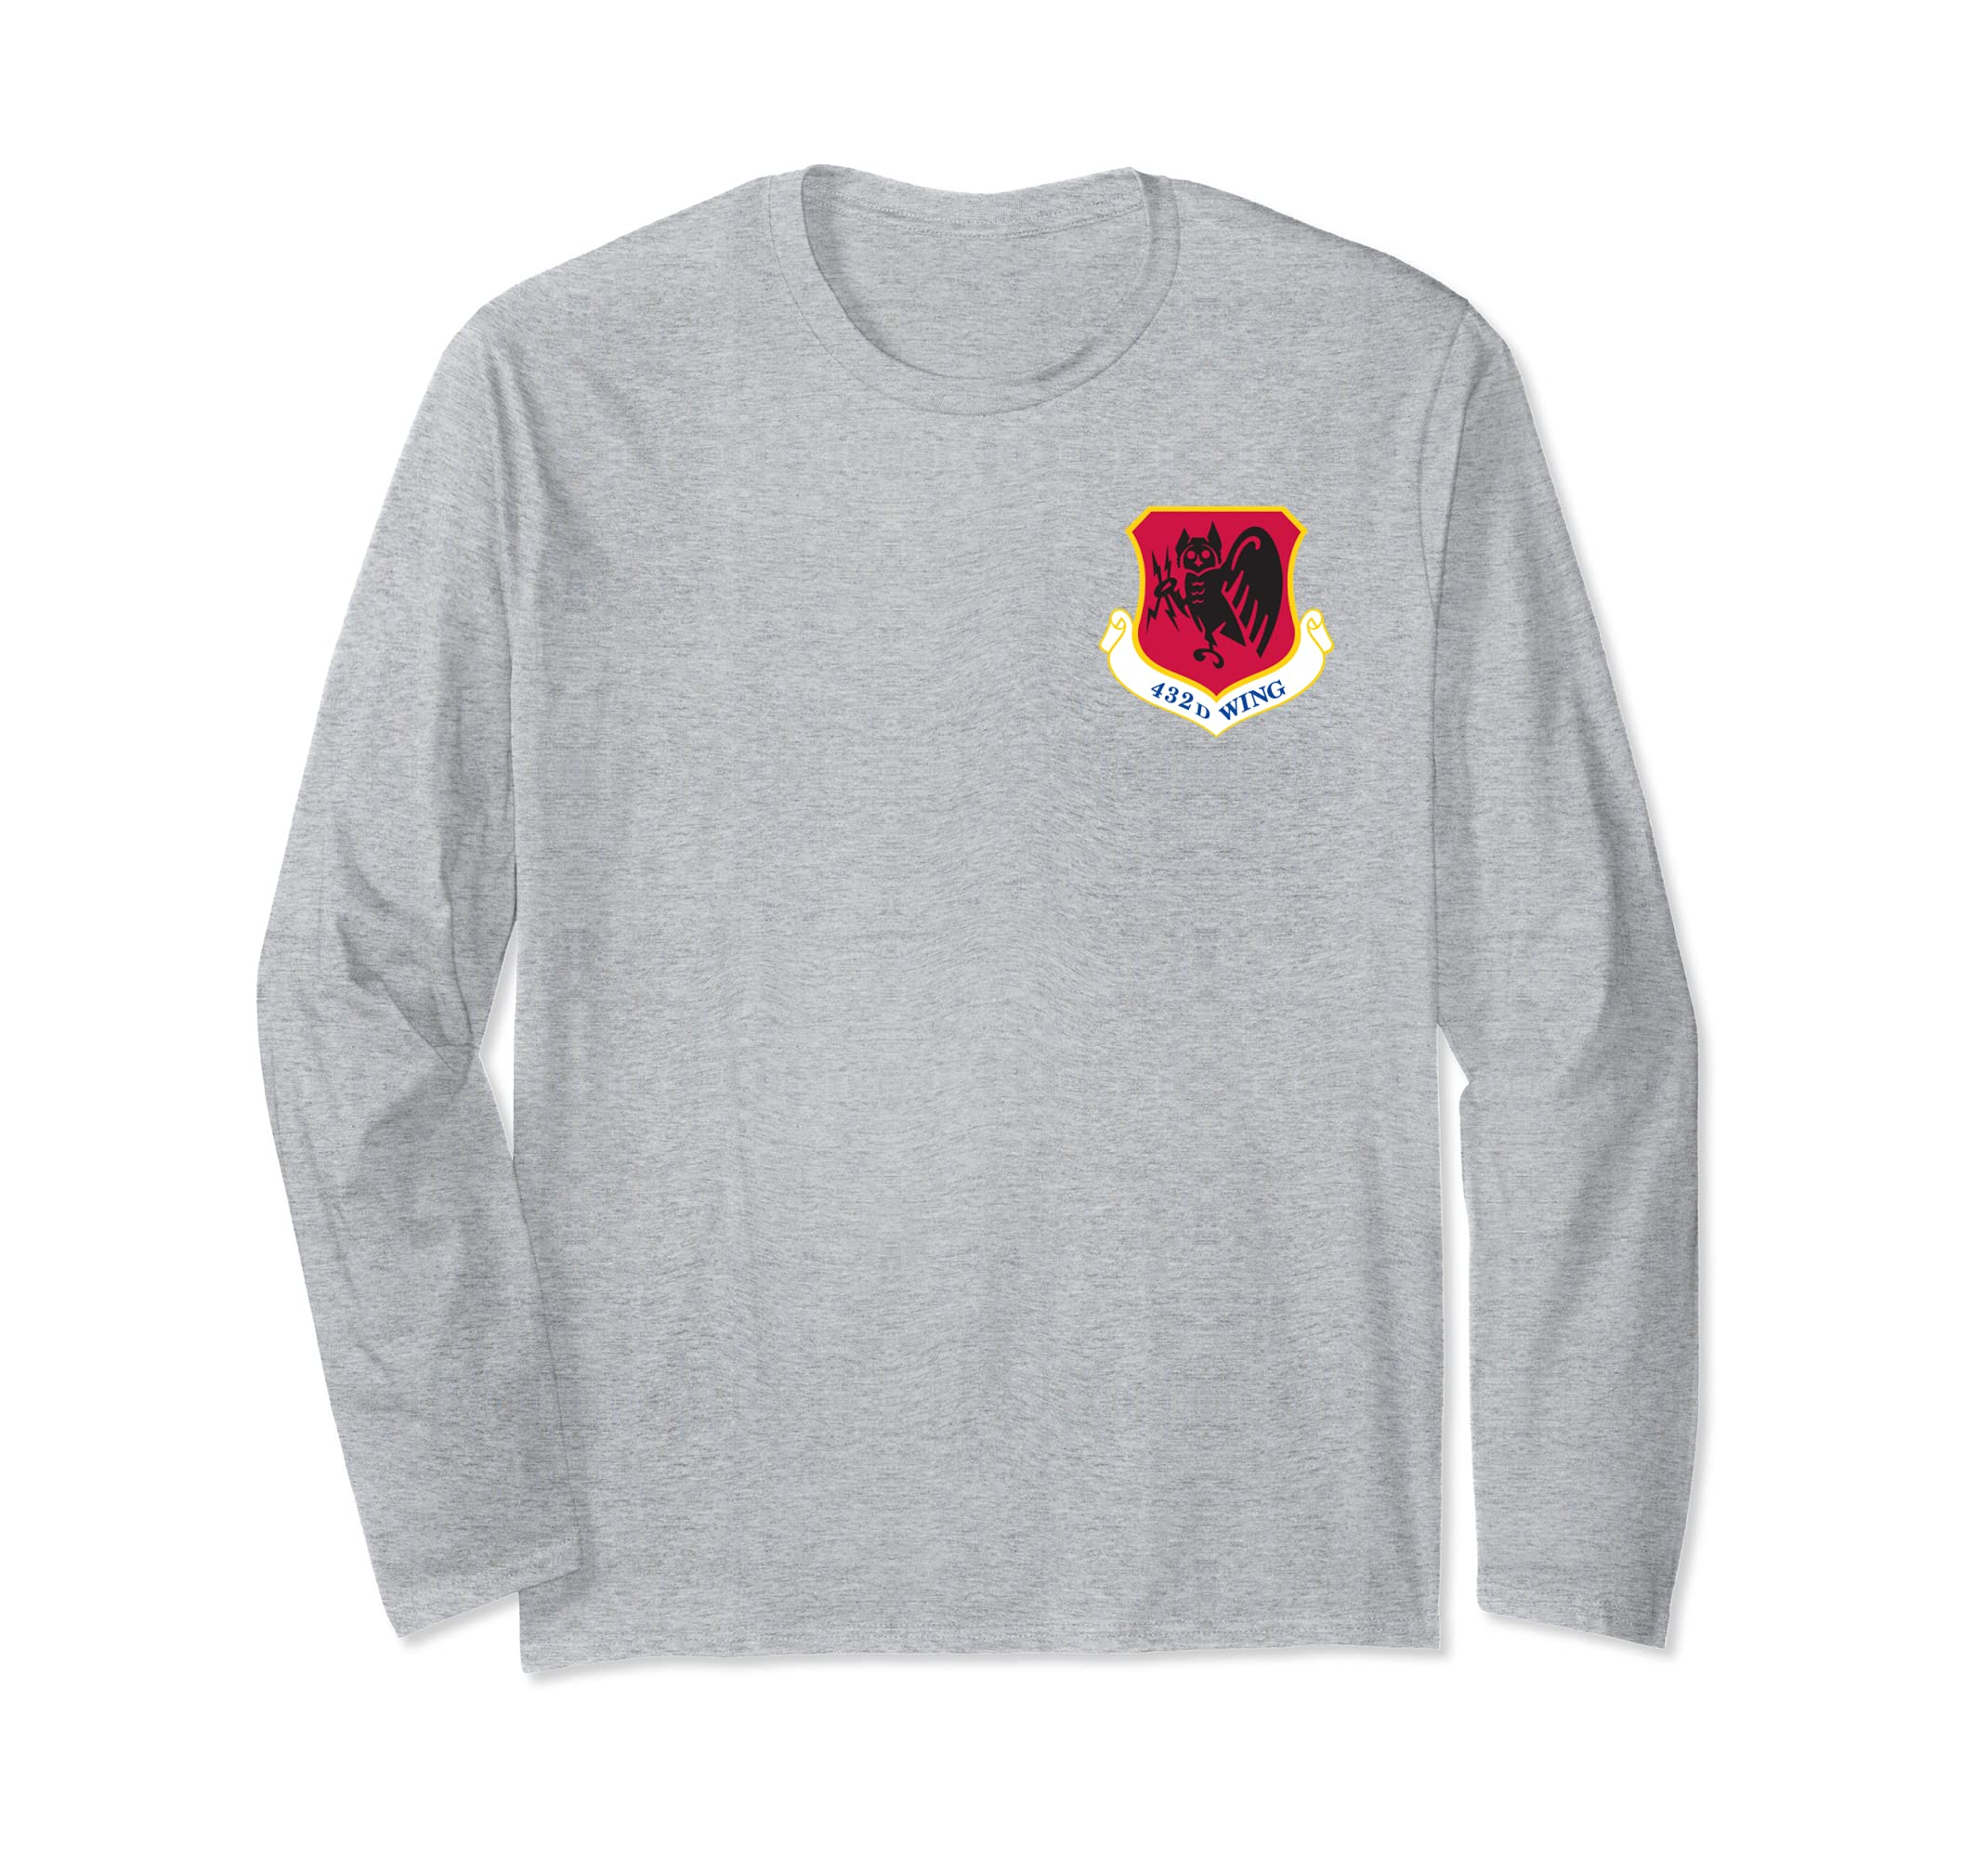 432d Wing Creech Air Force ACC Unmanned Aircraft Long Sleeve-azvn